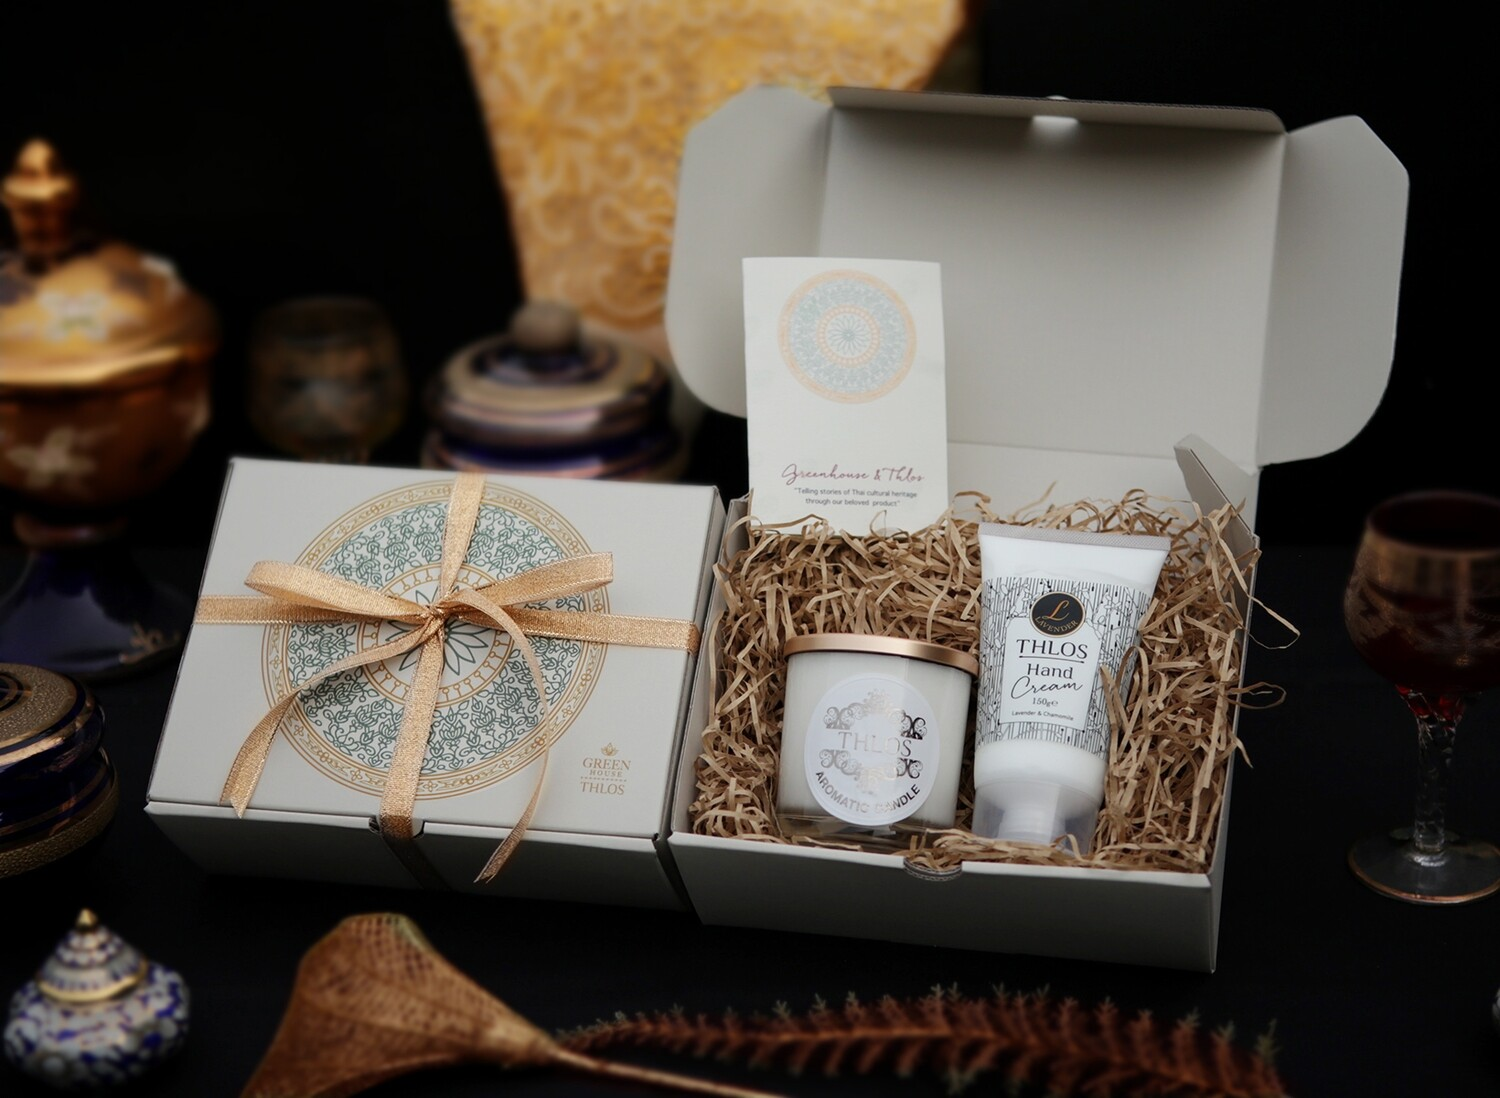 THLOS Aroma Therapy Gift Set NO. 5